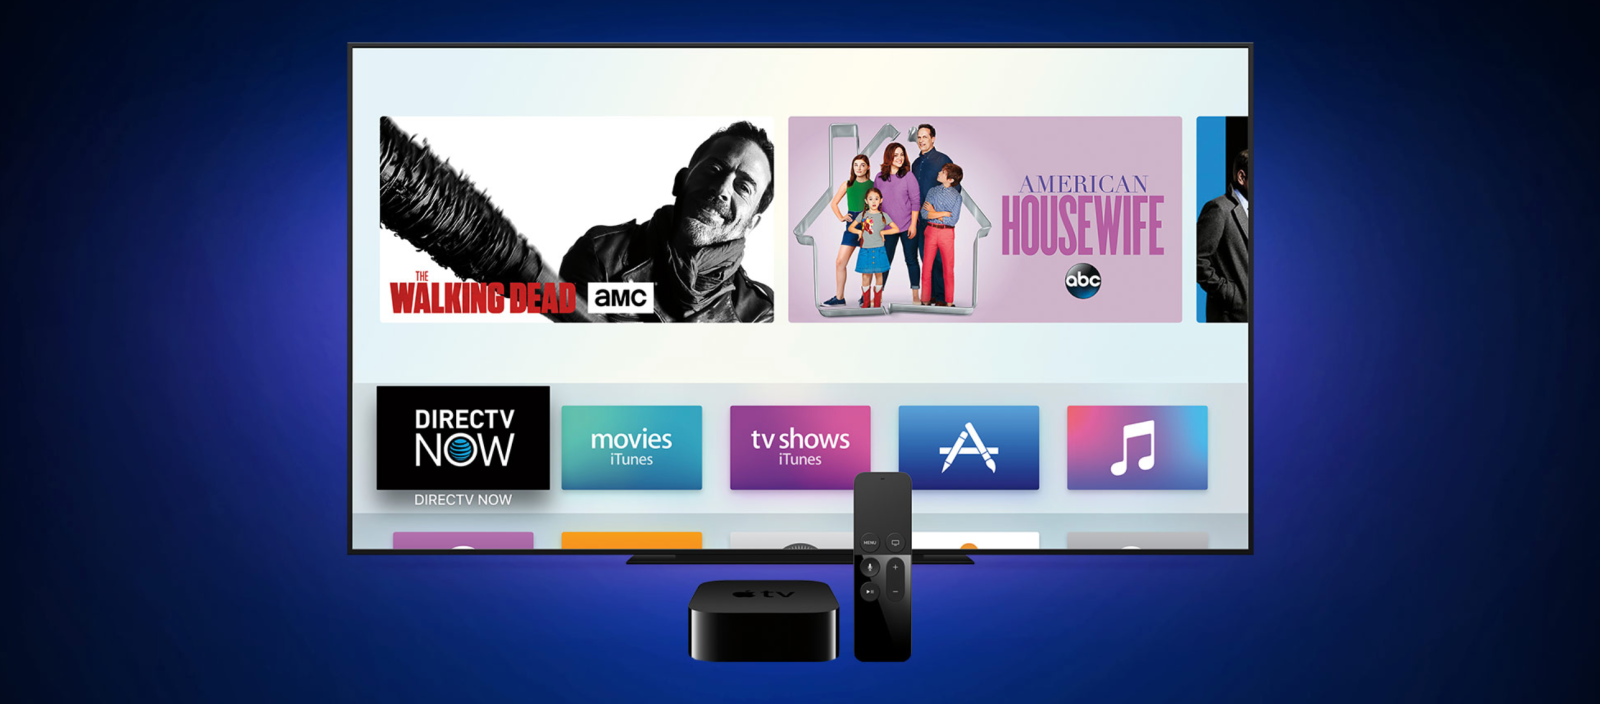 how to download directv now app on apple tv